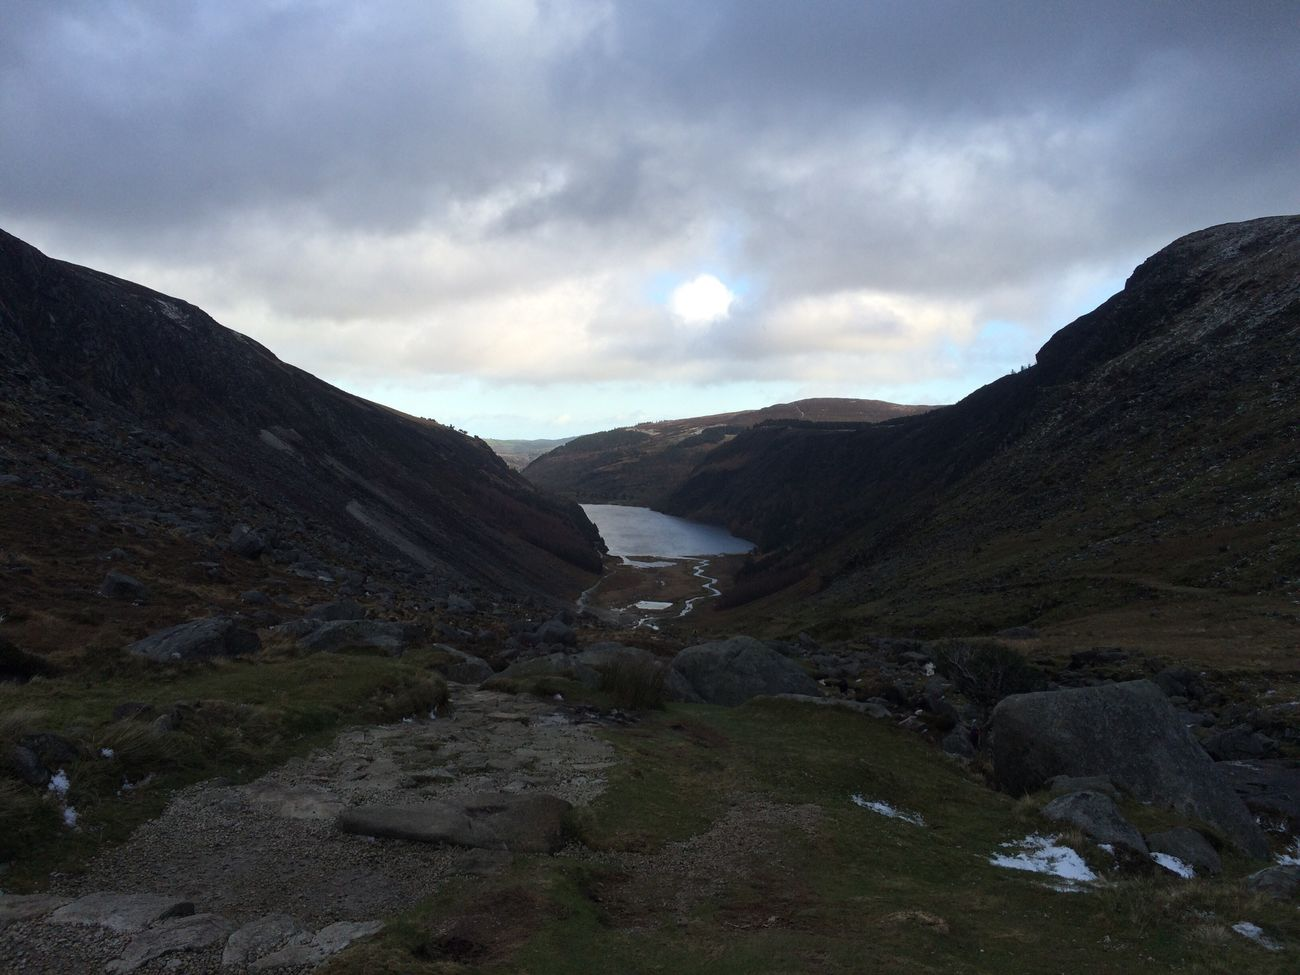 Check This Out Lake Hiking Nofilter Landscape Glendalough